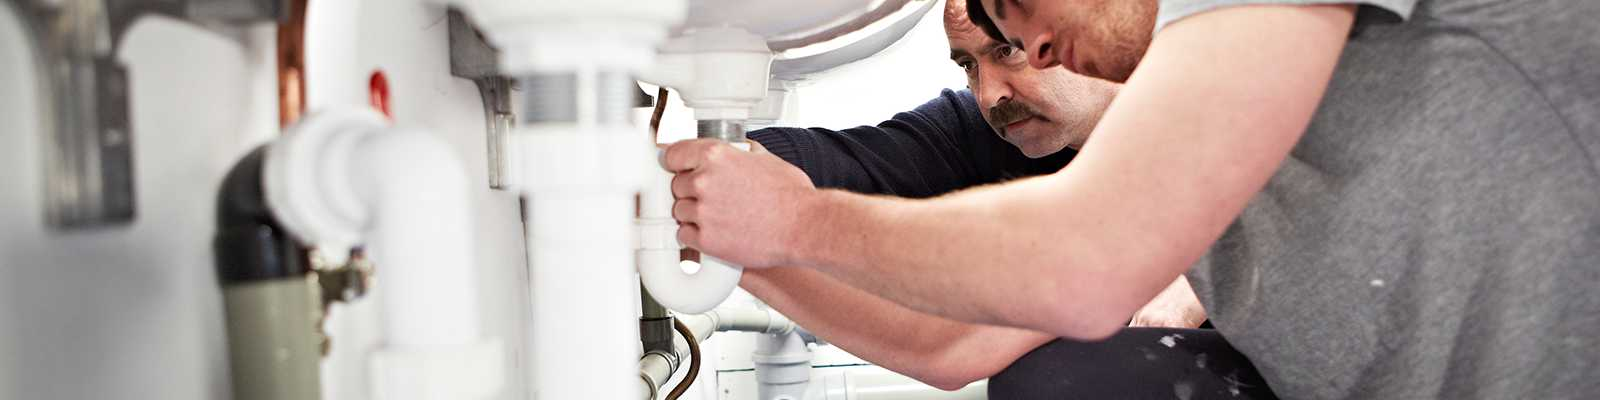 NVQ Level 2 Plumbing Assessments